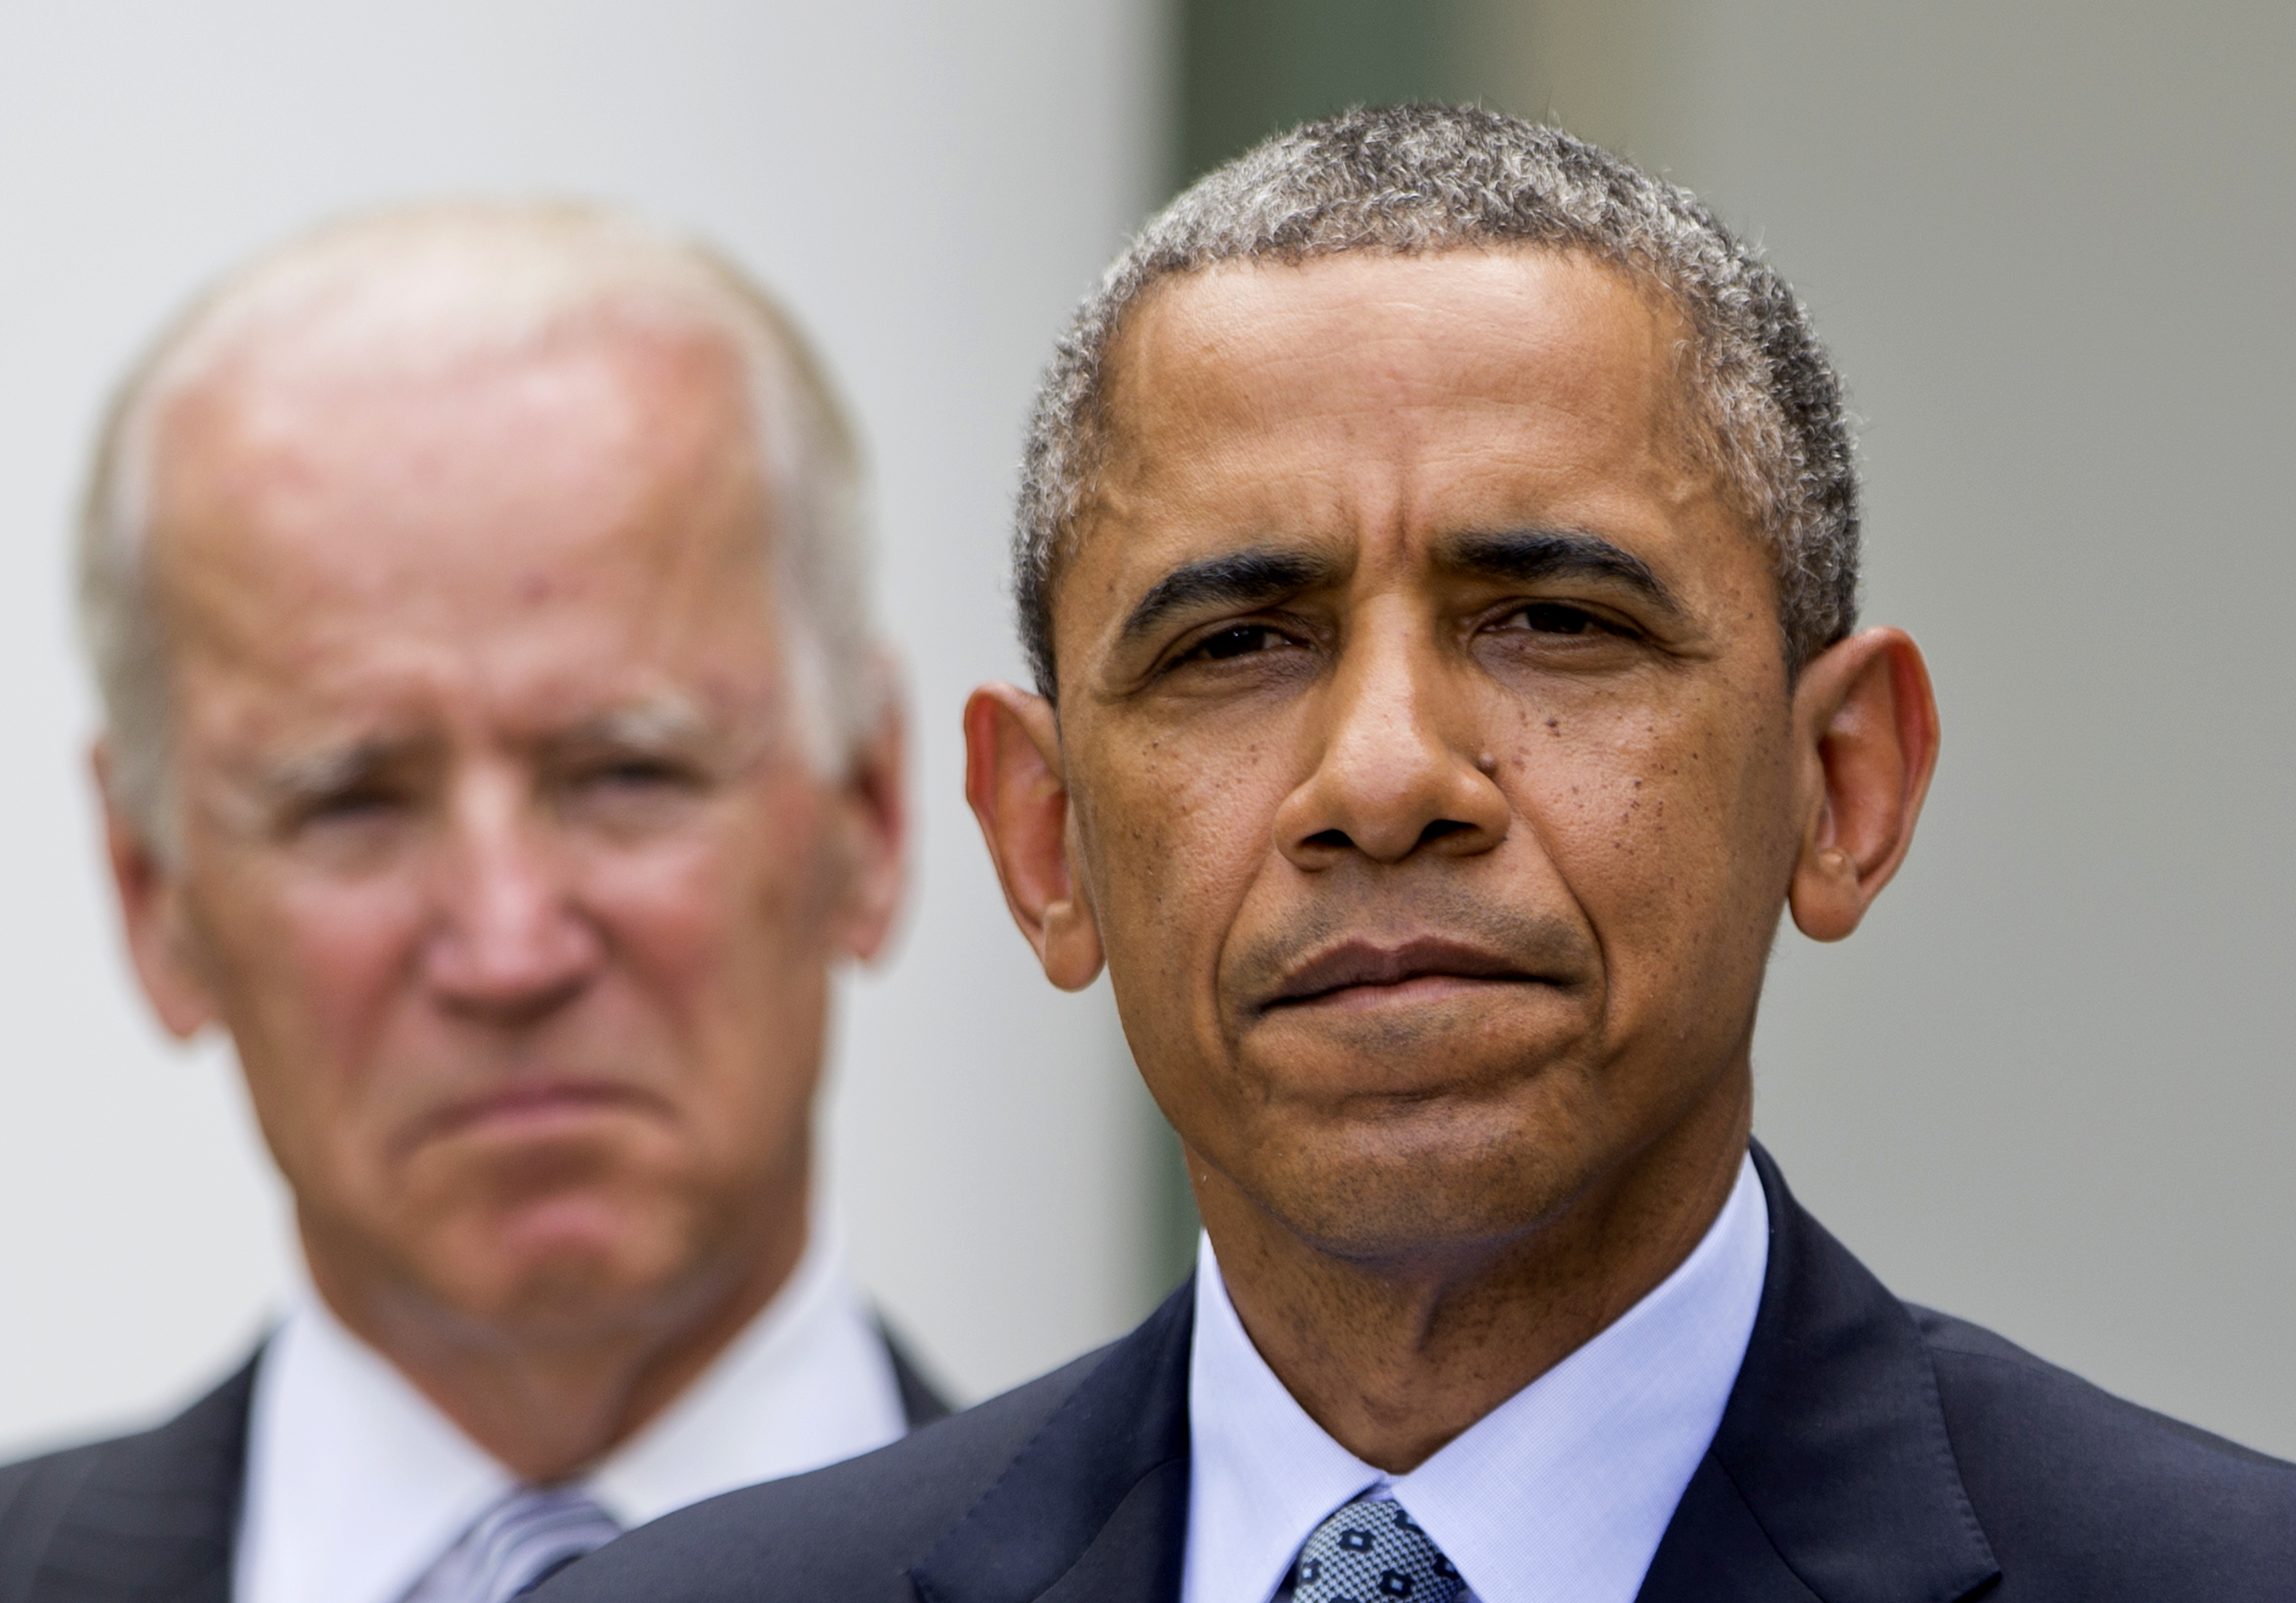 President Barack Obama, accompanied by Vice President Joe Biden, speaks about immigration reform on June 30, 2014, in the White House Rose Garden in Washington.